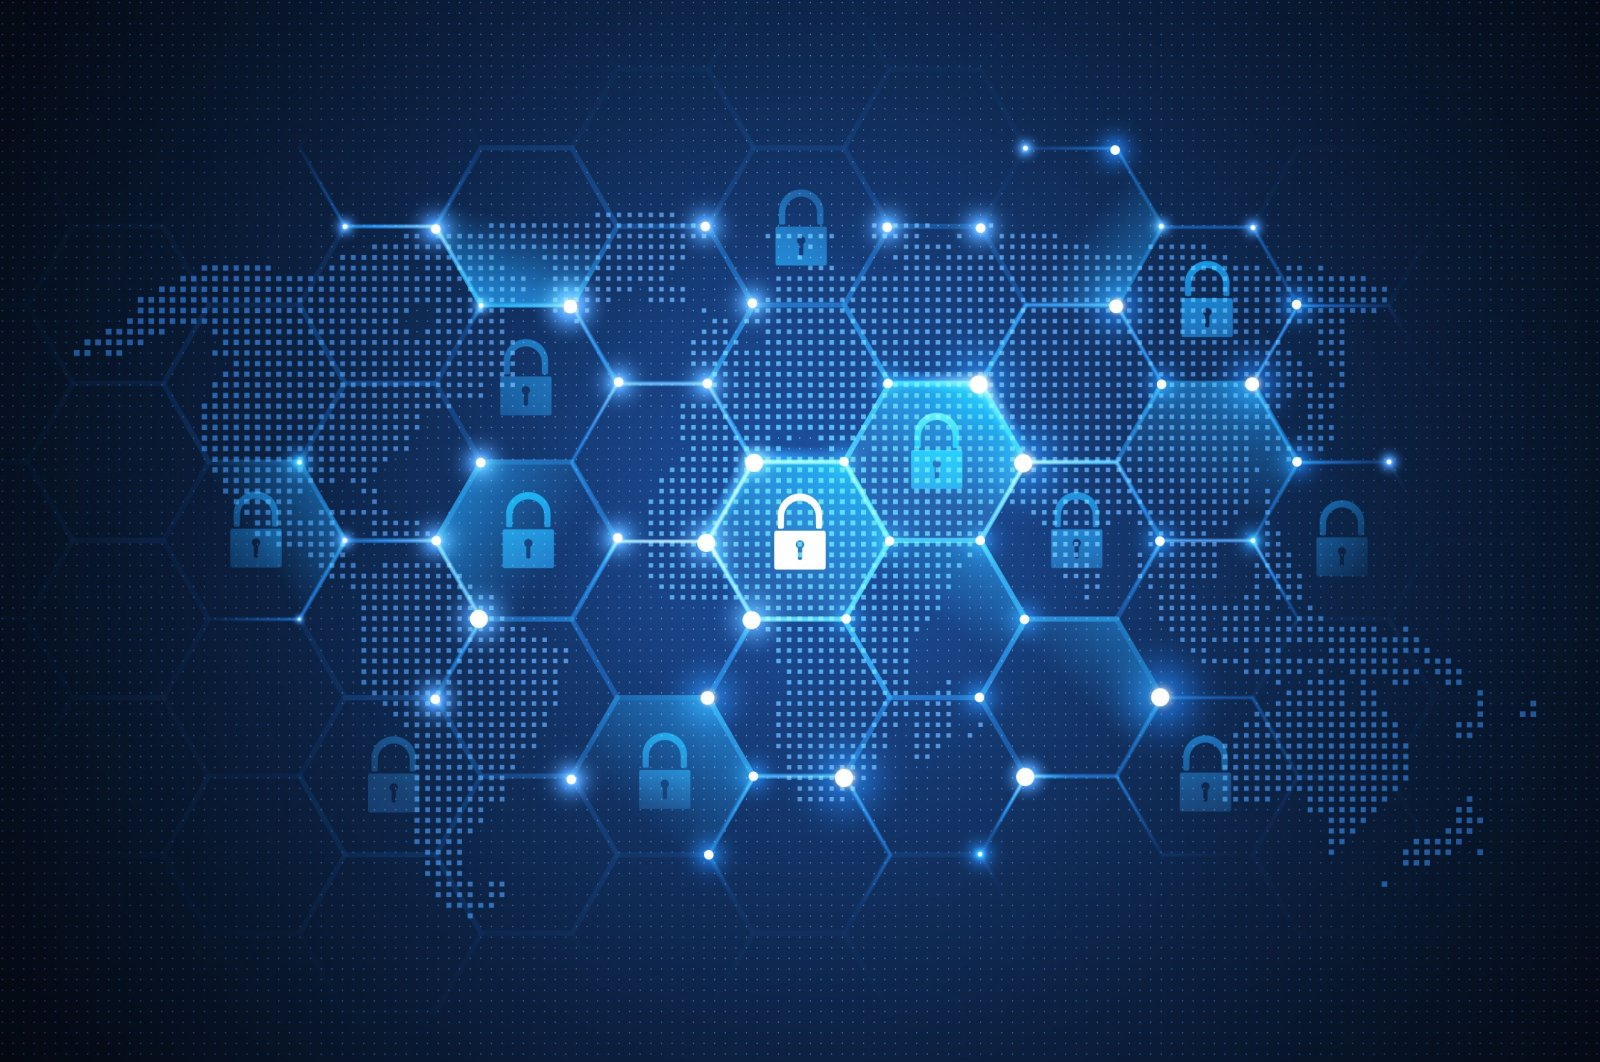 In 2020 alone, the number of attacks on companies worldwide aiming to steal data from them, violate data security and/or render data unusable and demand ransom in return, was over 70 billion. (Shutterstock Photo)